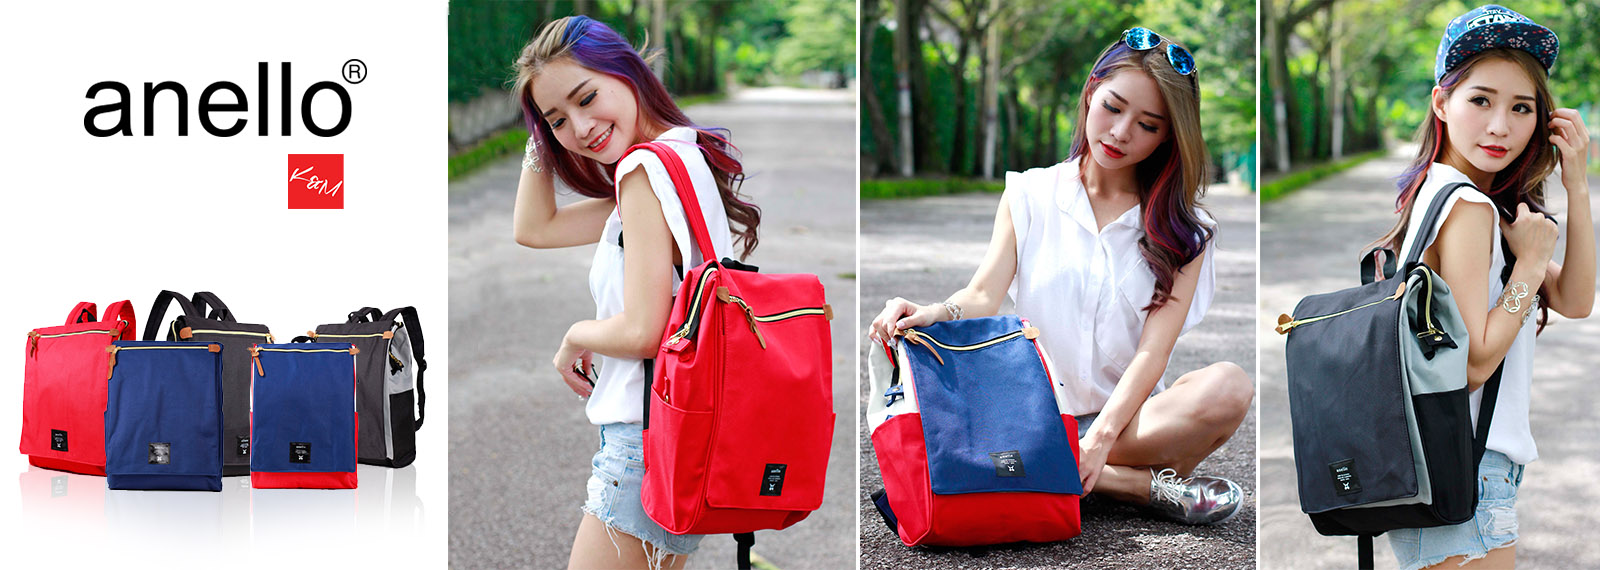 Anello Bag New